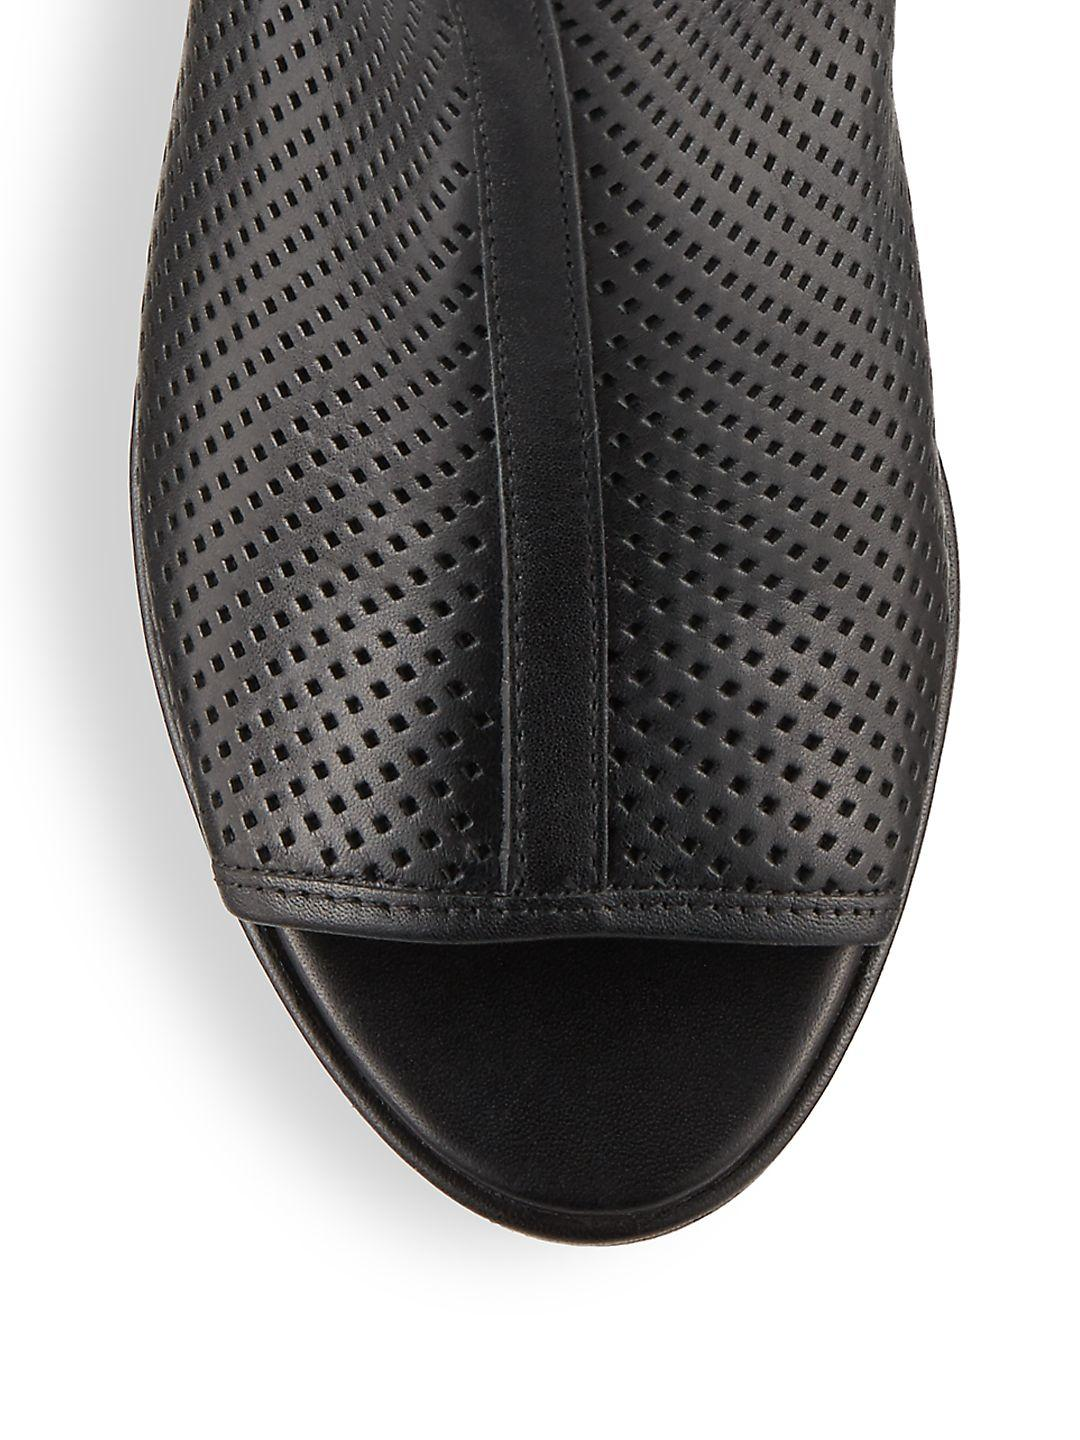 Kenneth Cole Leather Charlo Perforated Ankle Boots in Black